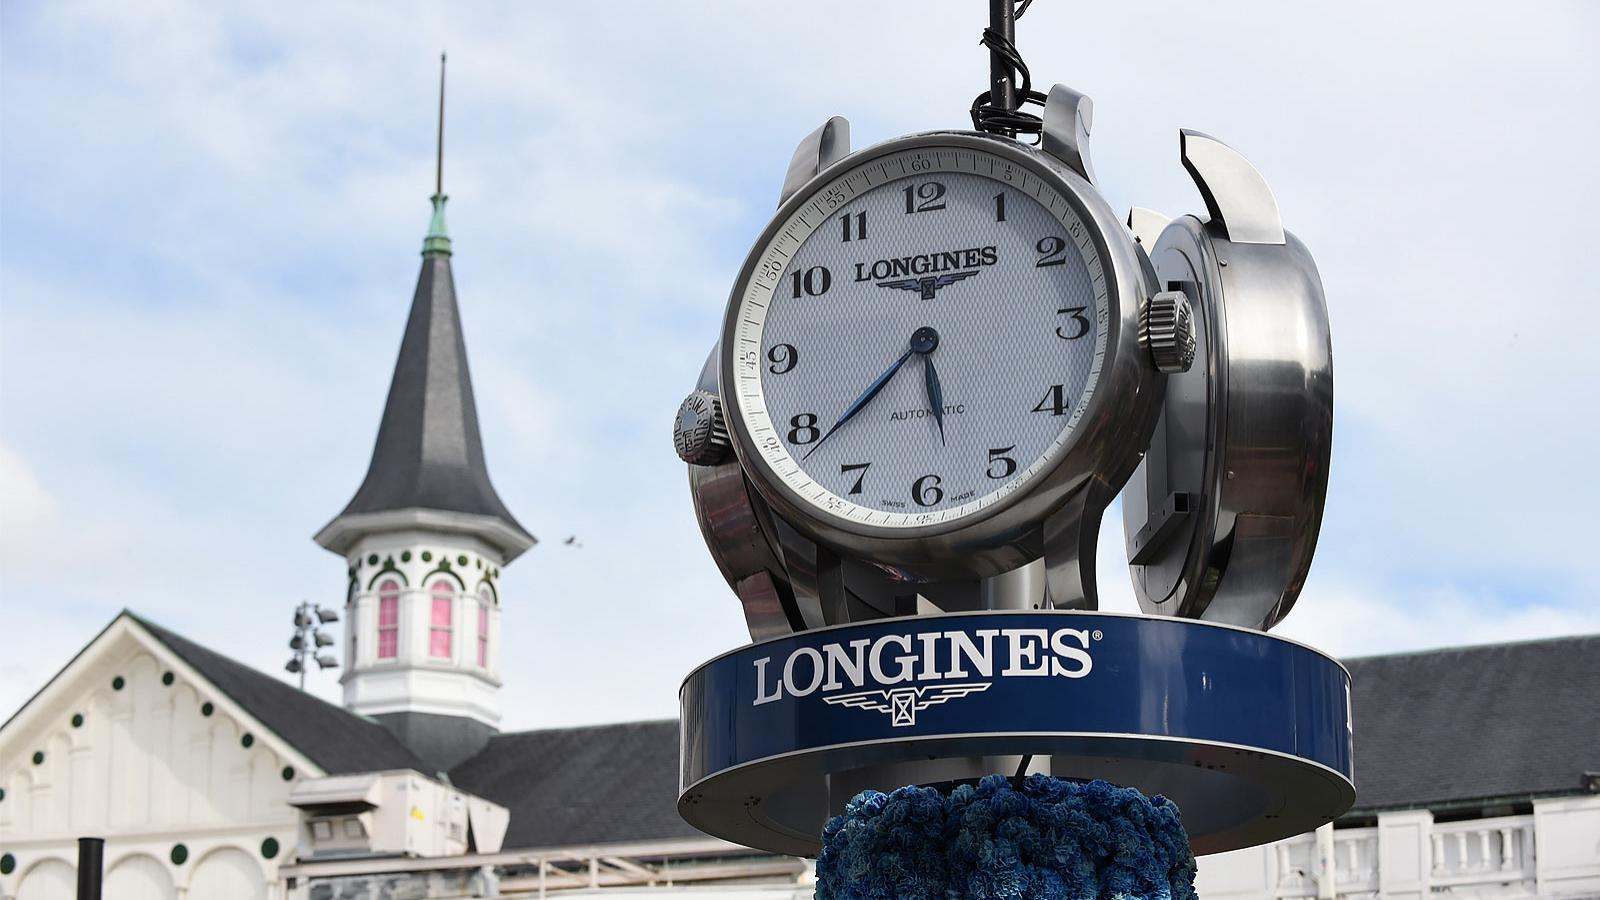 Longines Kentucky Oaks & Kentucky Derby, Longines Churchill Distaff Turf Mile; Horse Racing; 2019